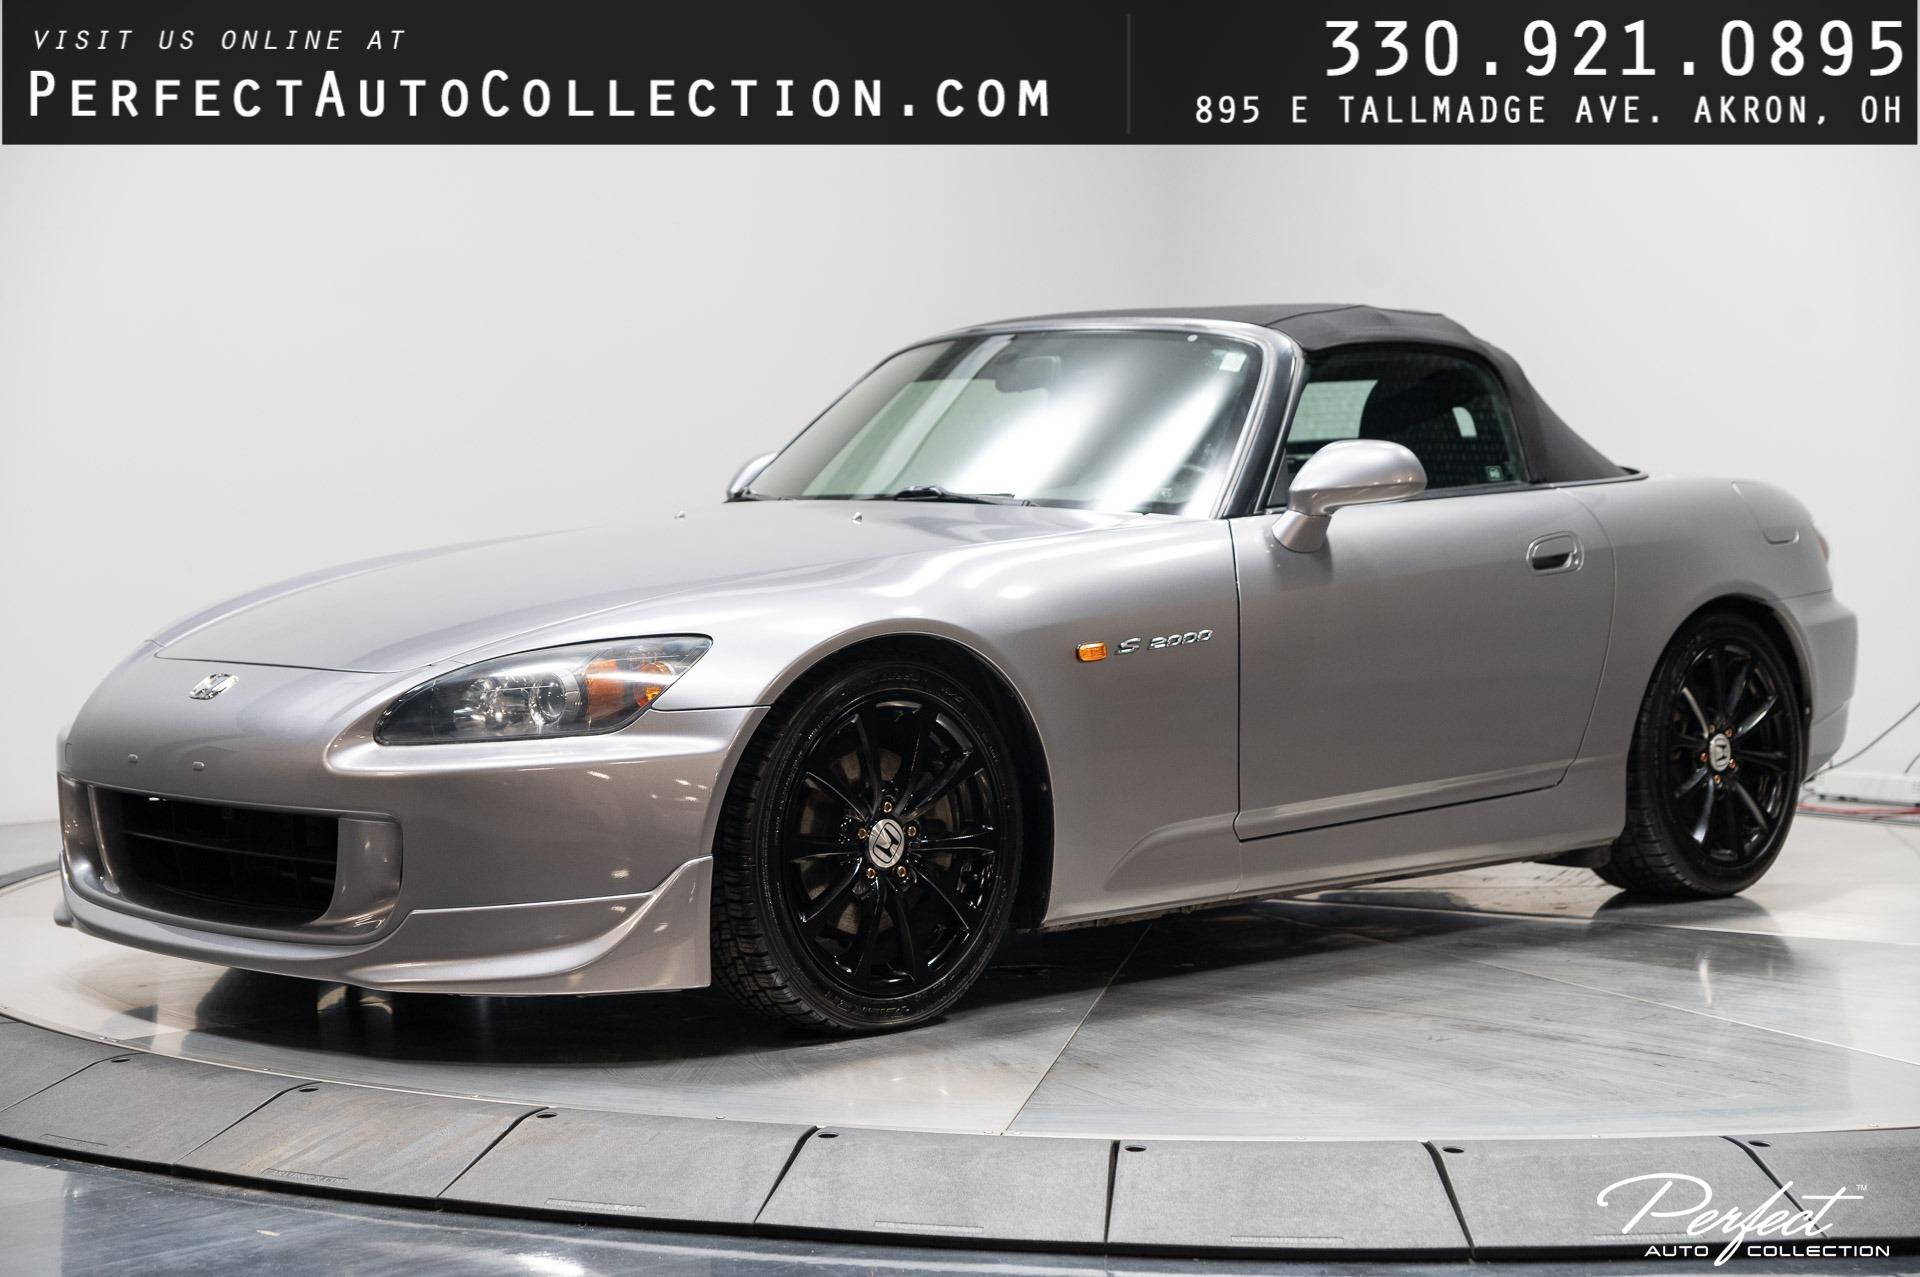 Used 2006 Honda S2000 for sale Sold at Perfect Auto Collection in Akron OH 44310 1